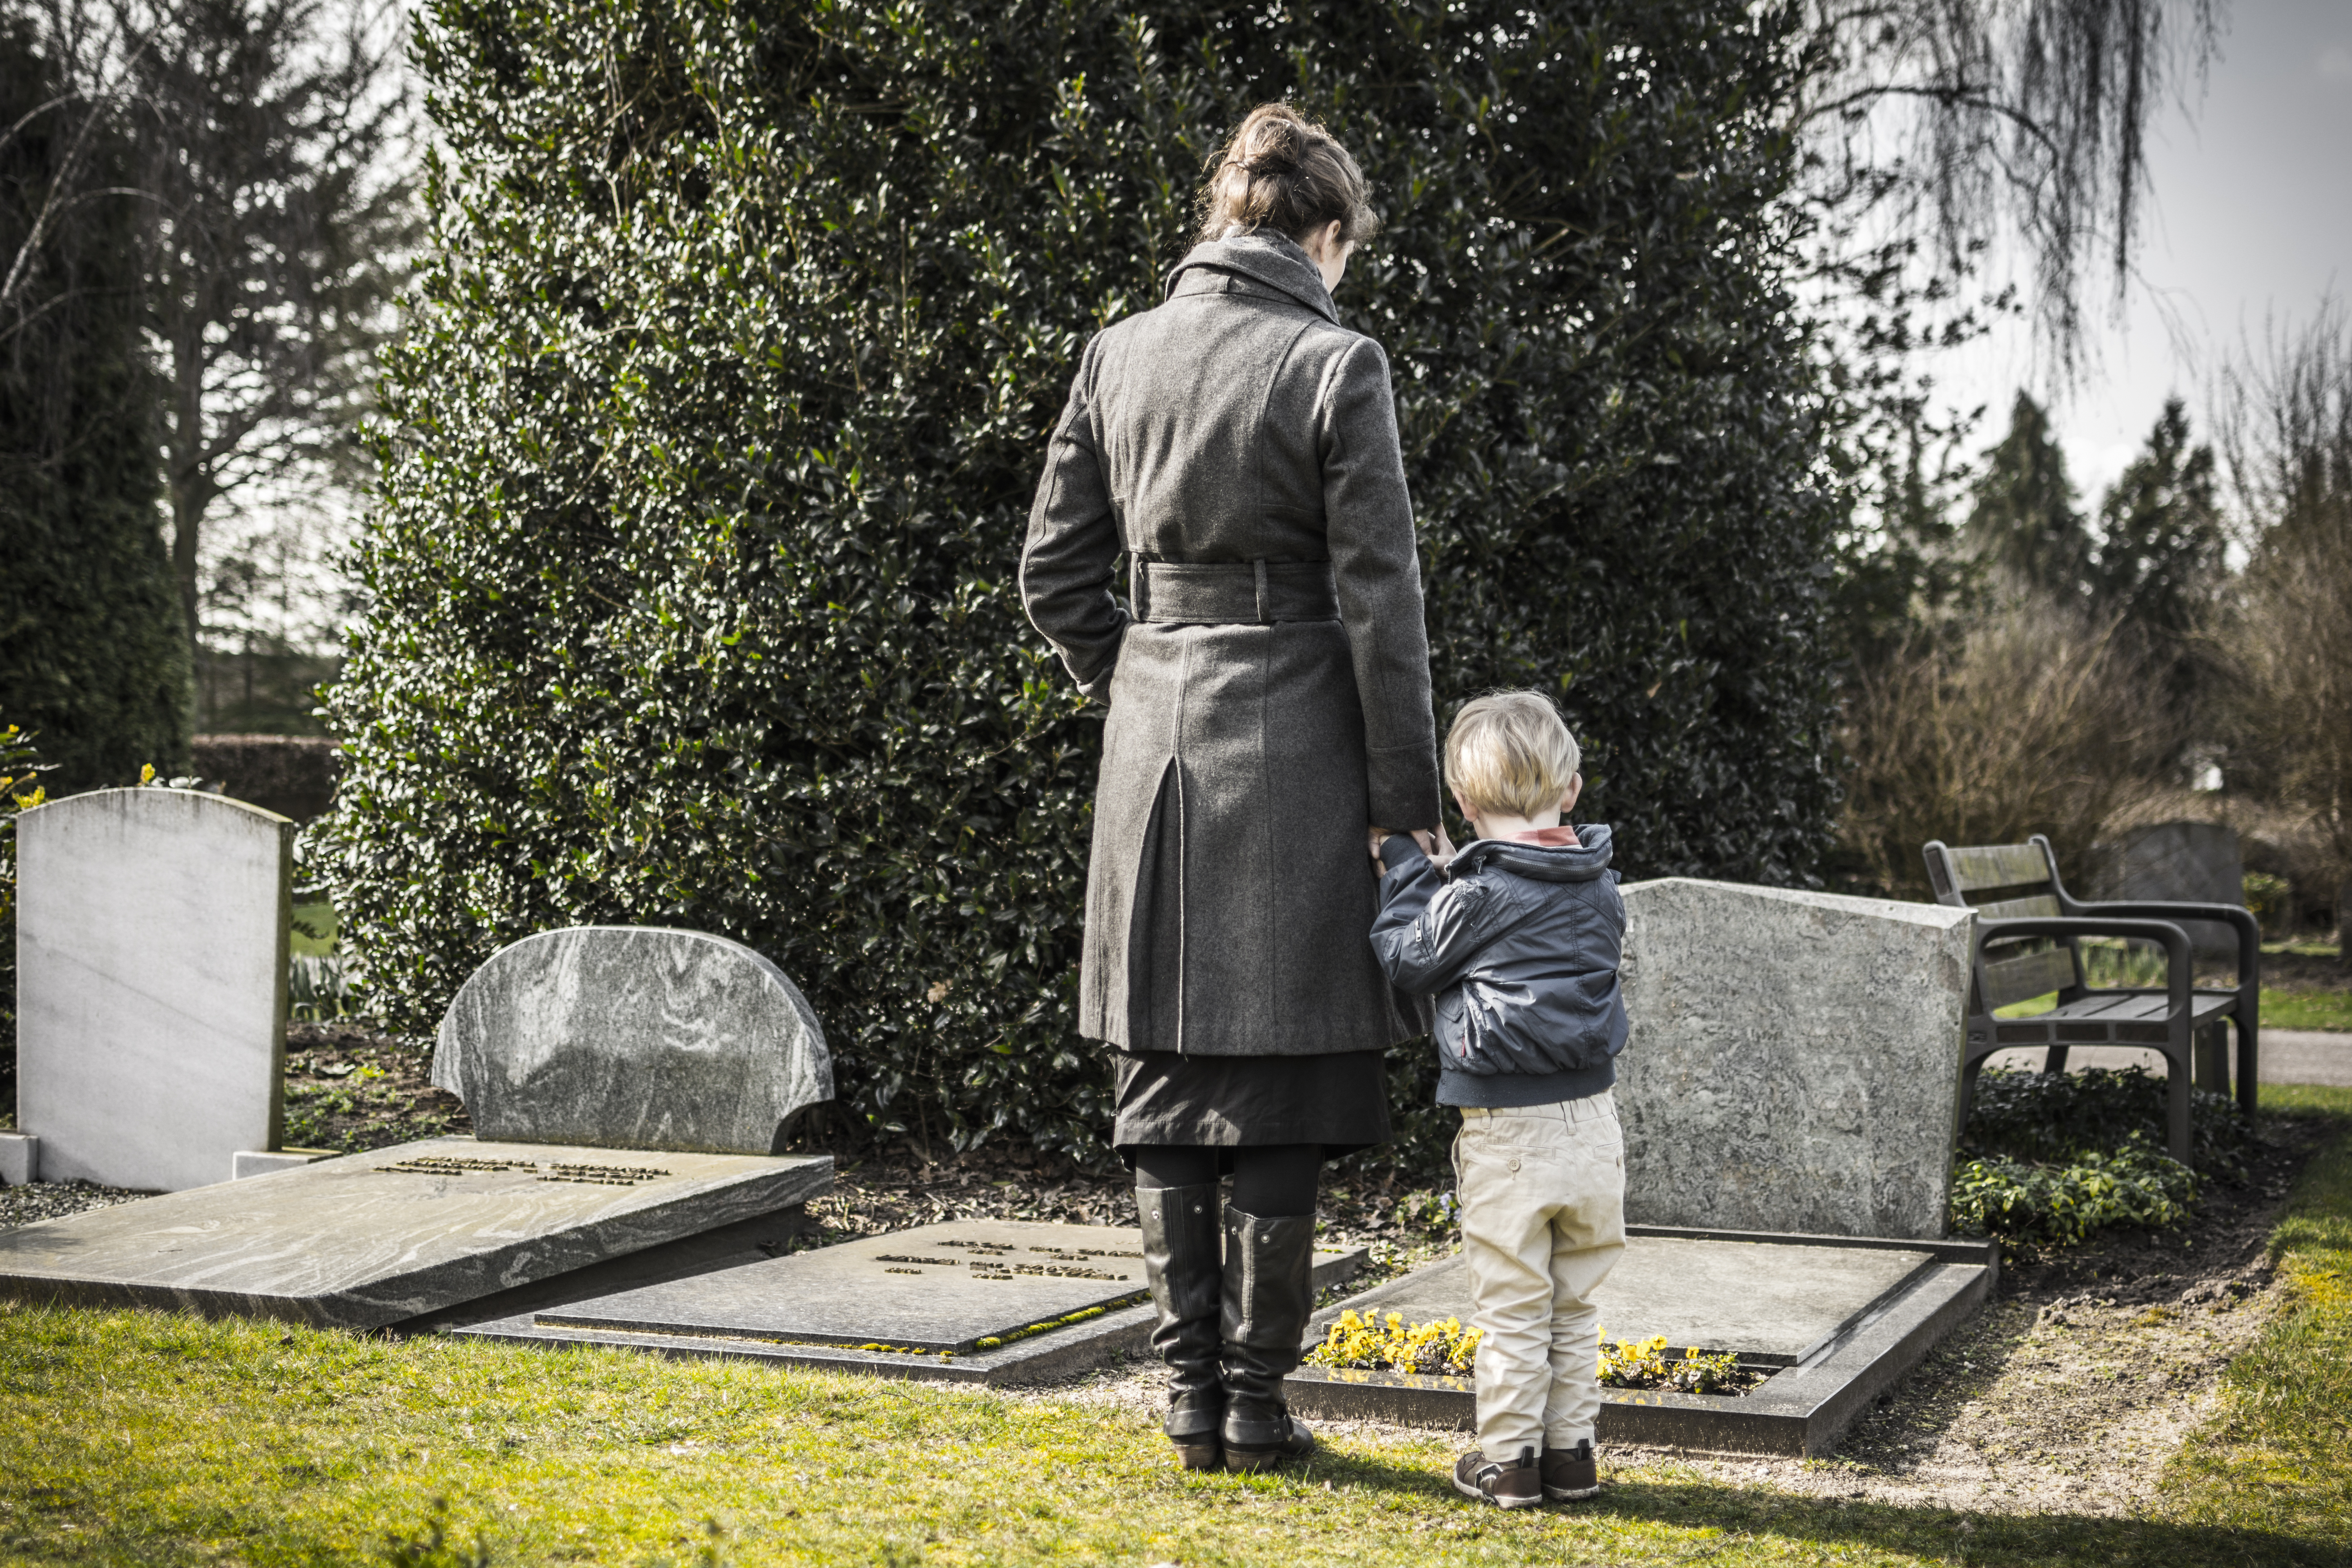 My Mother Just Passed Away. Now What Do I Need to Do?